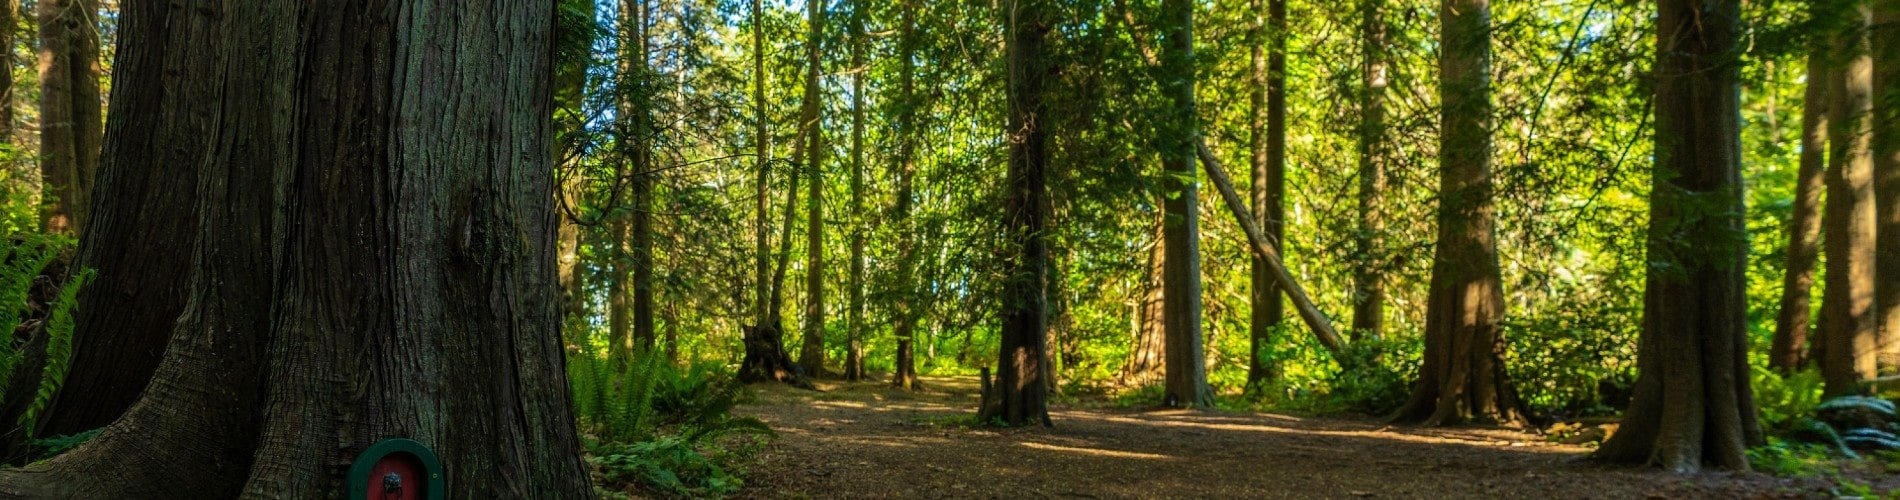 wooded area in nanaimo, bc